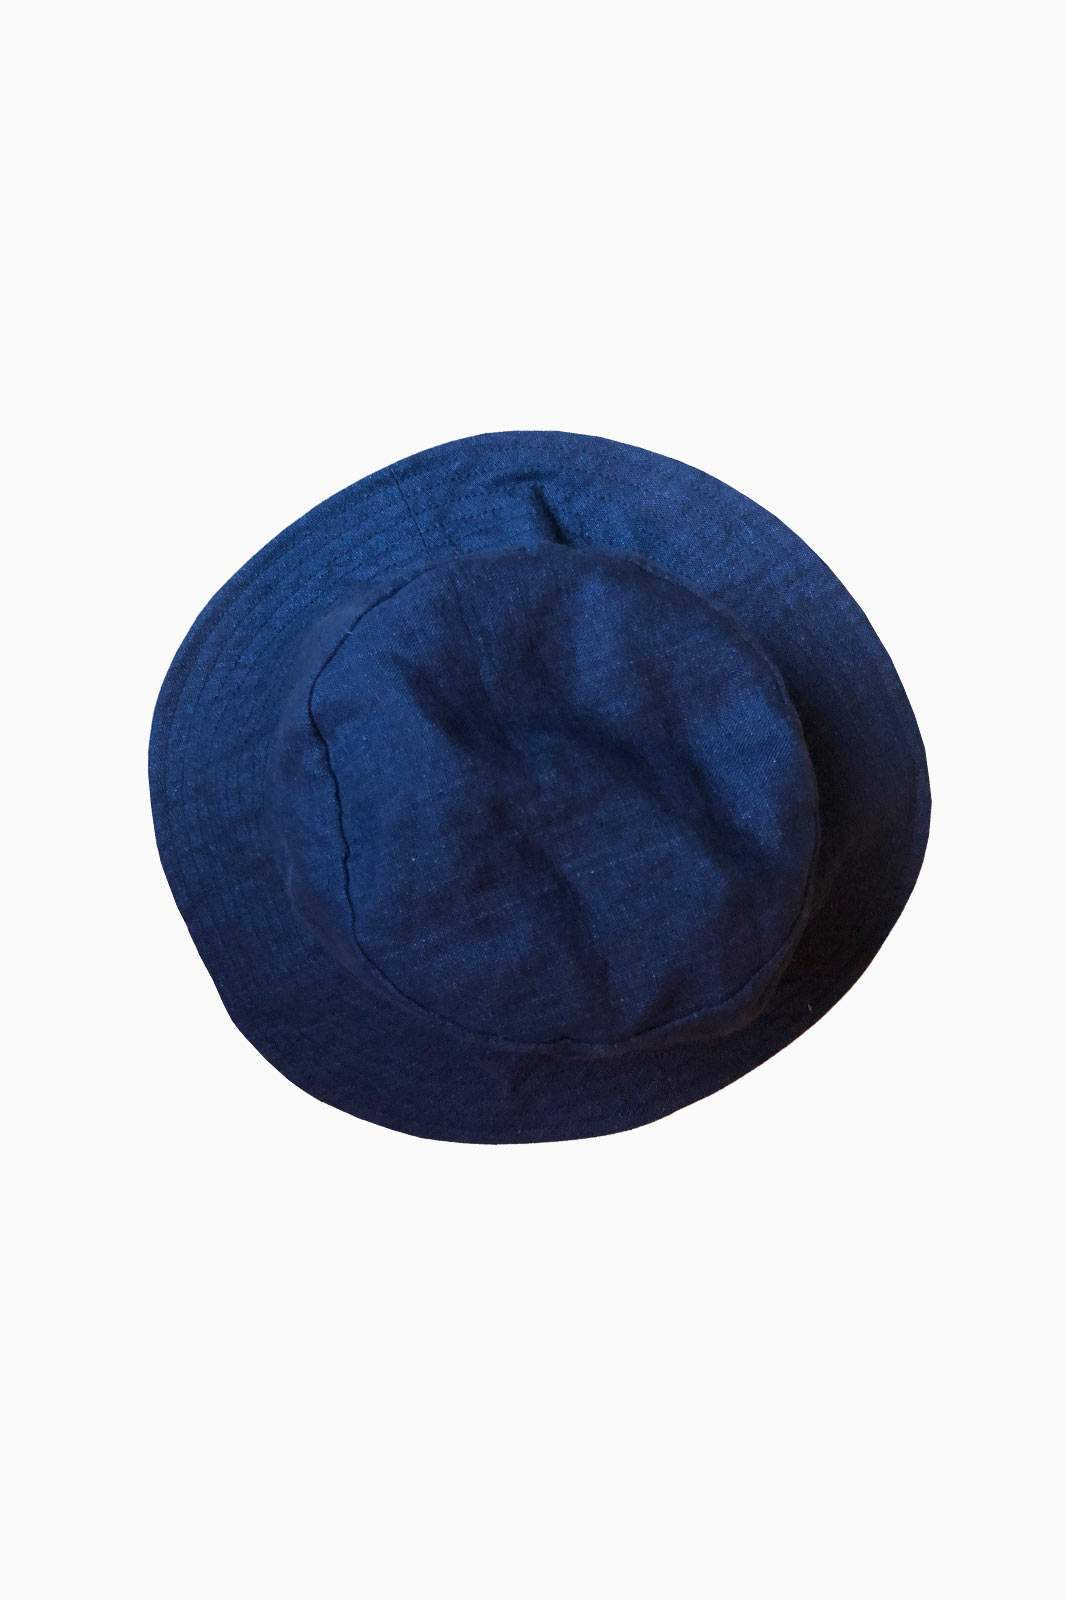 arkitaip Homeware Denim Blue arkitaip x Laetitia Rouget Bucket Hat